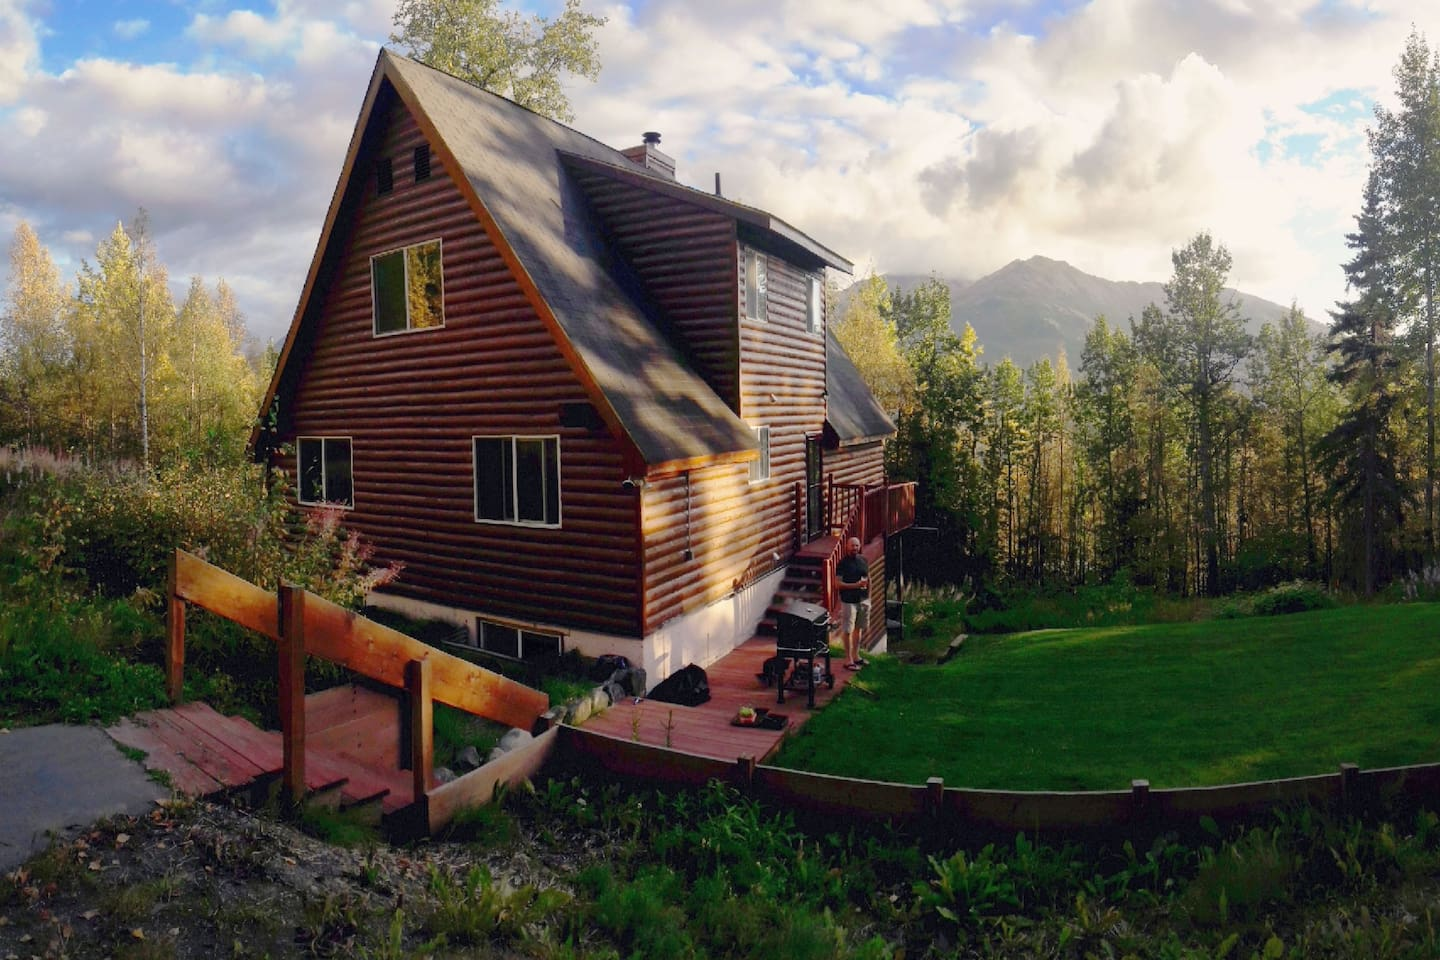 Our mountain home is situated on more than an acre, just two miles from downtown Eagle River and 20 minutes from Anchorage! Tucked away yet convenient to town. Plenty of parking.